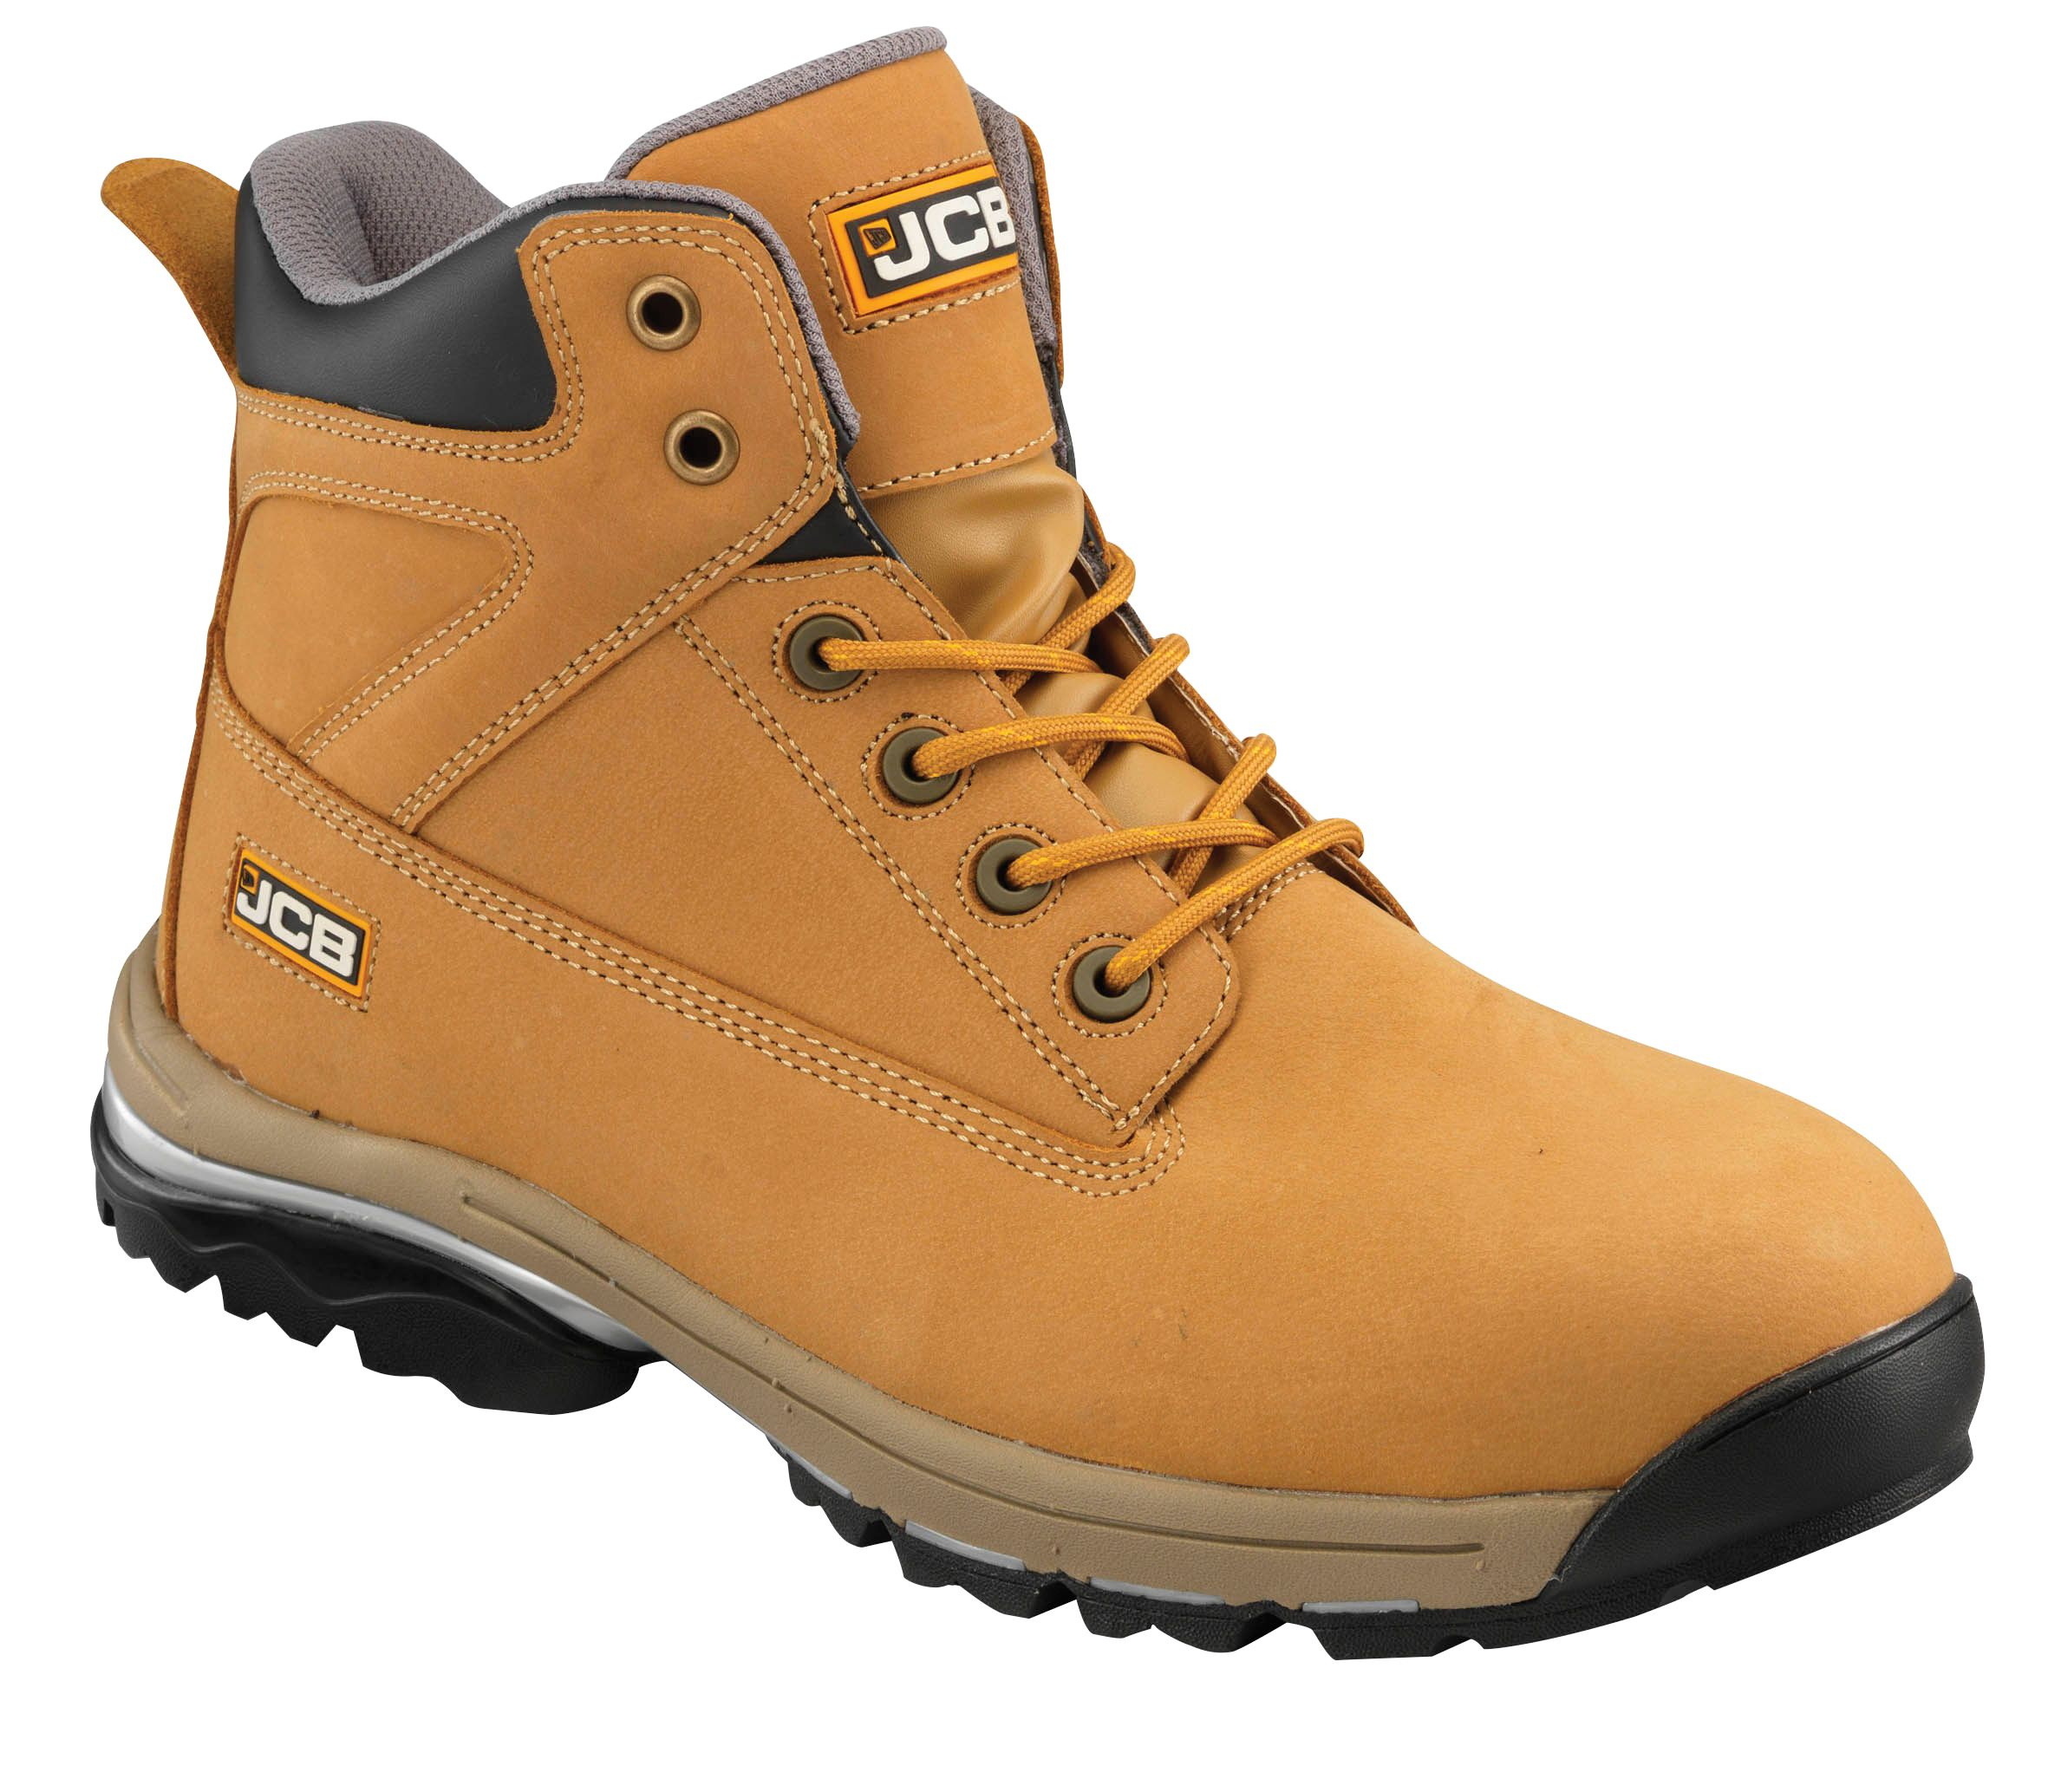 Jcb Honey Workmax Boots, Size 8